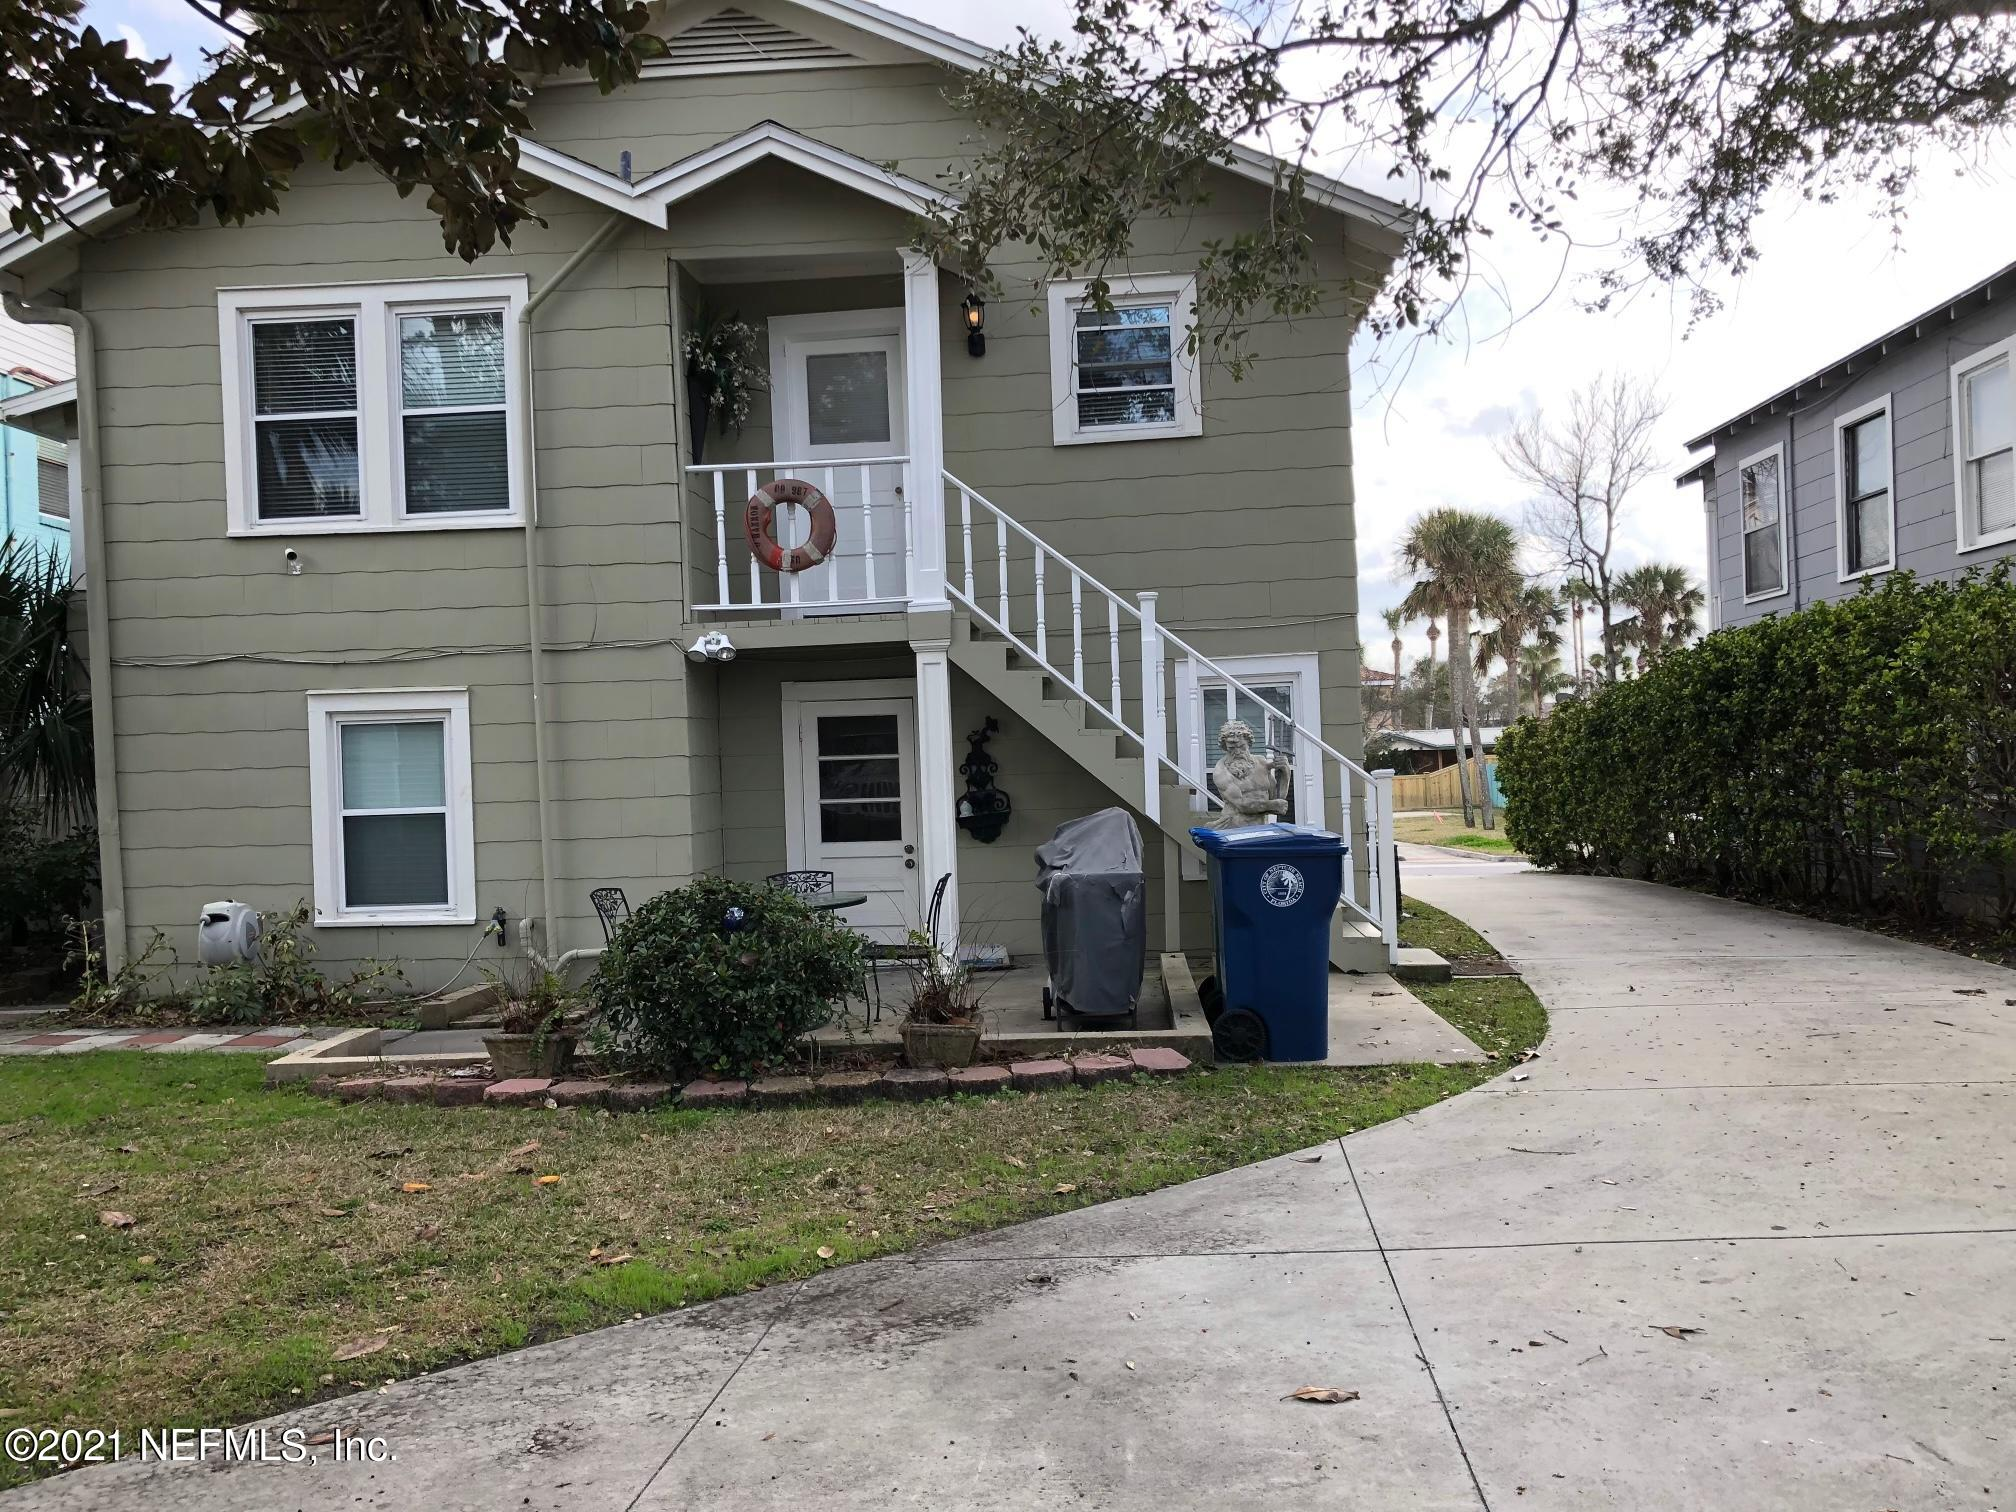 212 SEAGATE AVE, NEPTUNE BEACH, Florida 32266, 4 Bedrooms Bedrooms, ,2 BathroomsBathrooms,Residential,For Sale,212 SEAGATE AVE,1118827